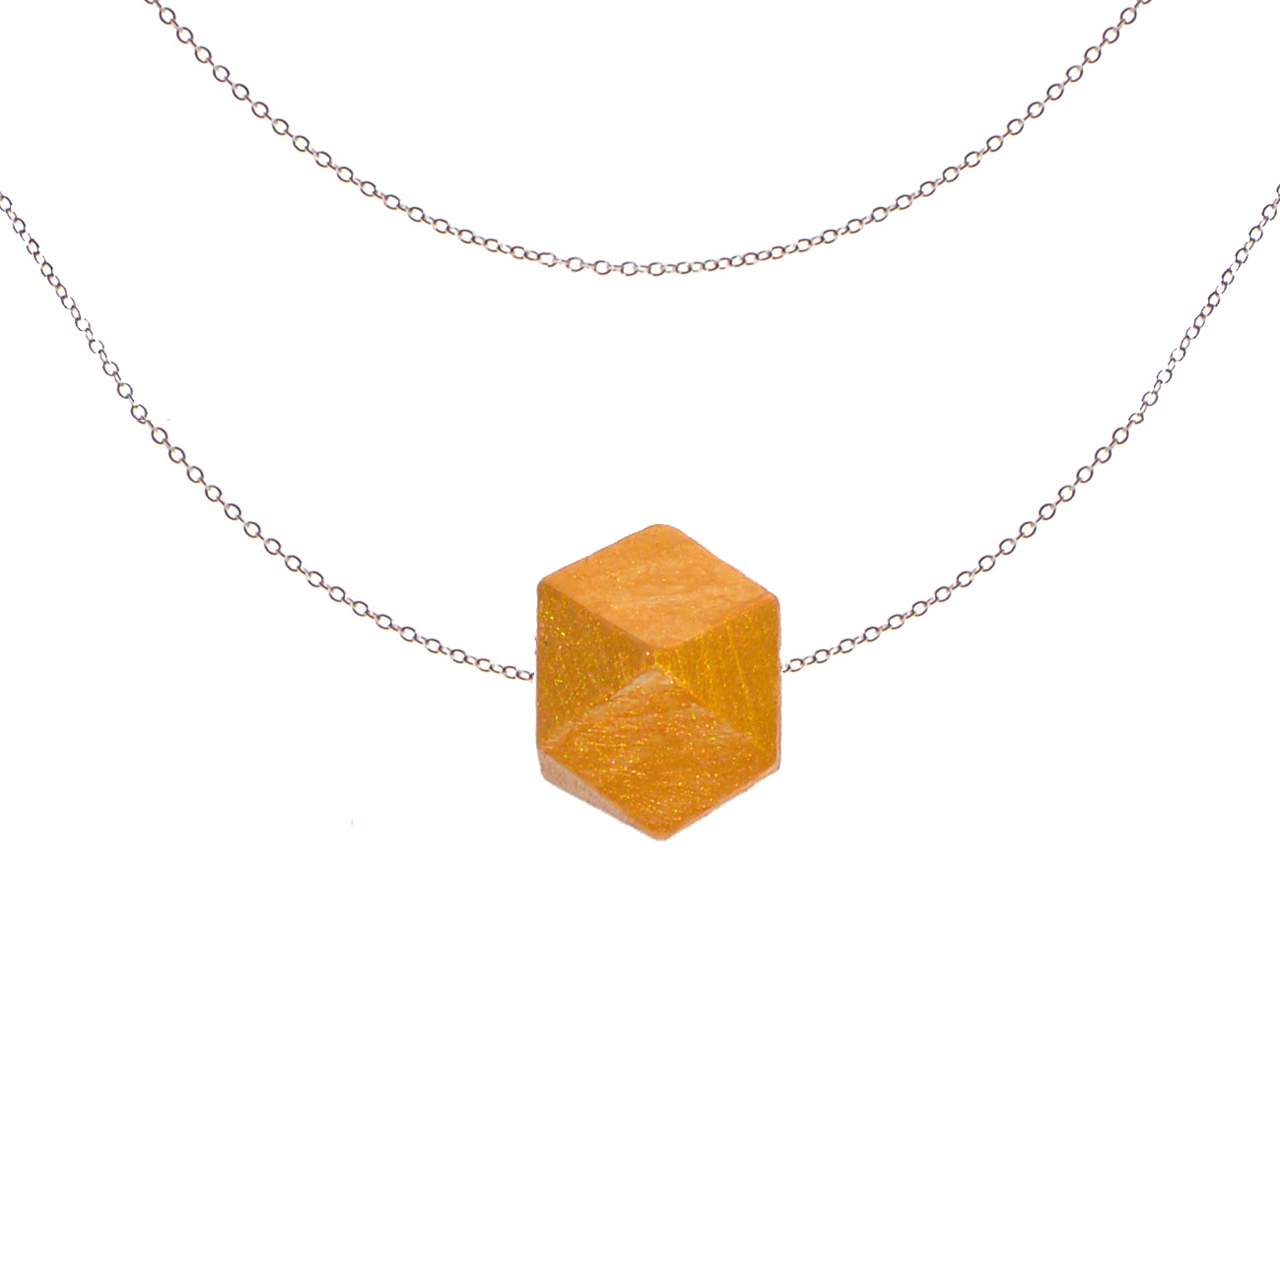 Mon Bijou - Necklace Night Out 1 gold   The Design Gift Shop